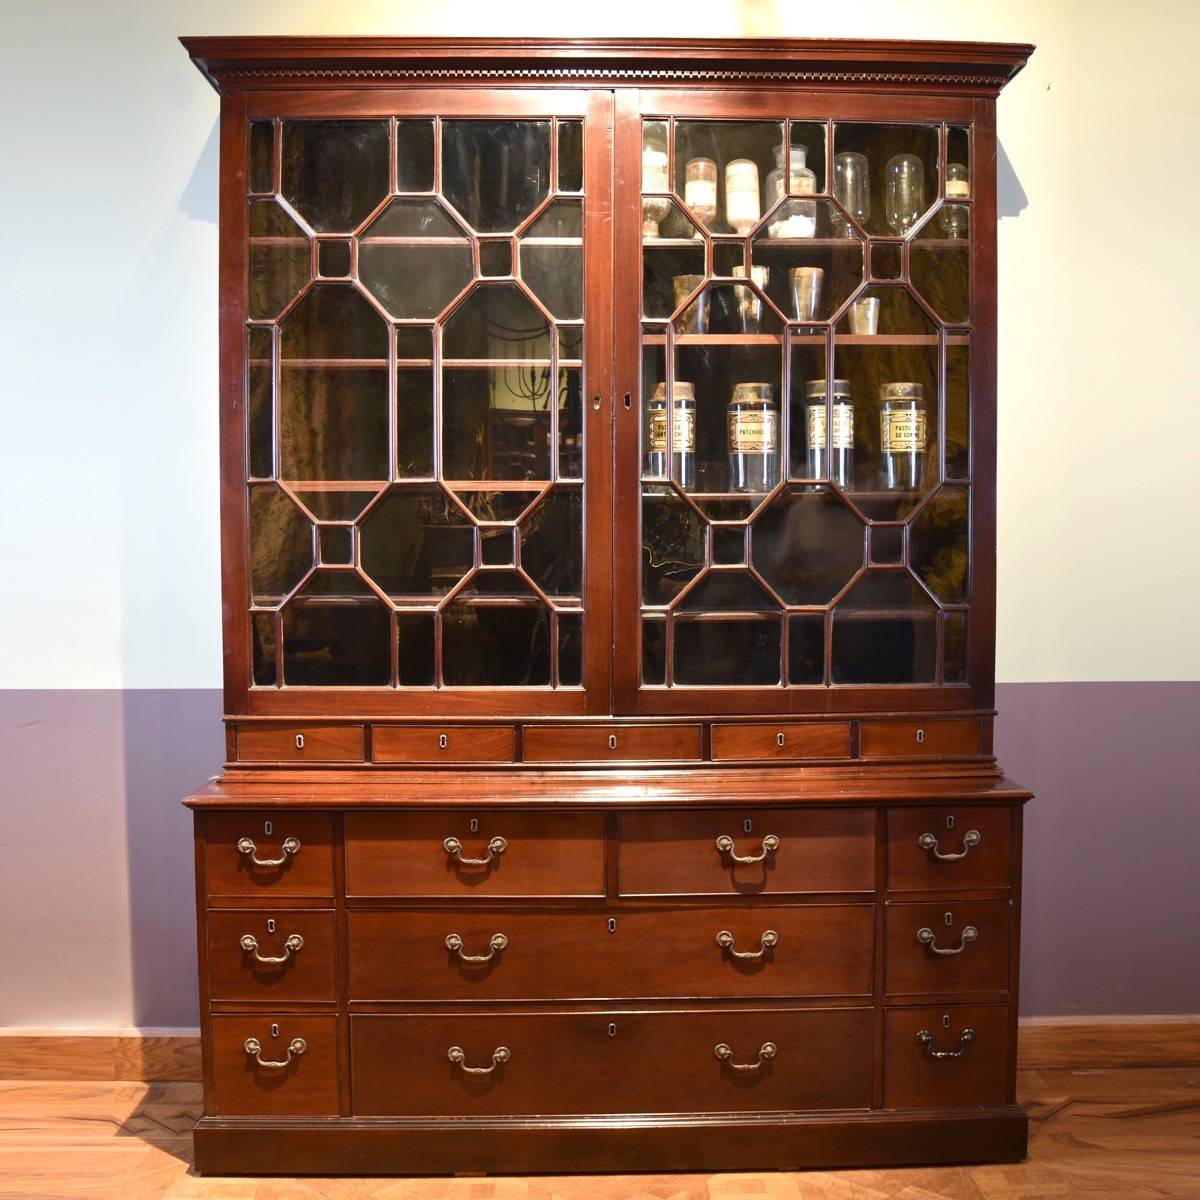 English 18th century bookcase - The English Antique Furniture Collections